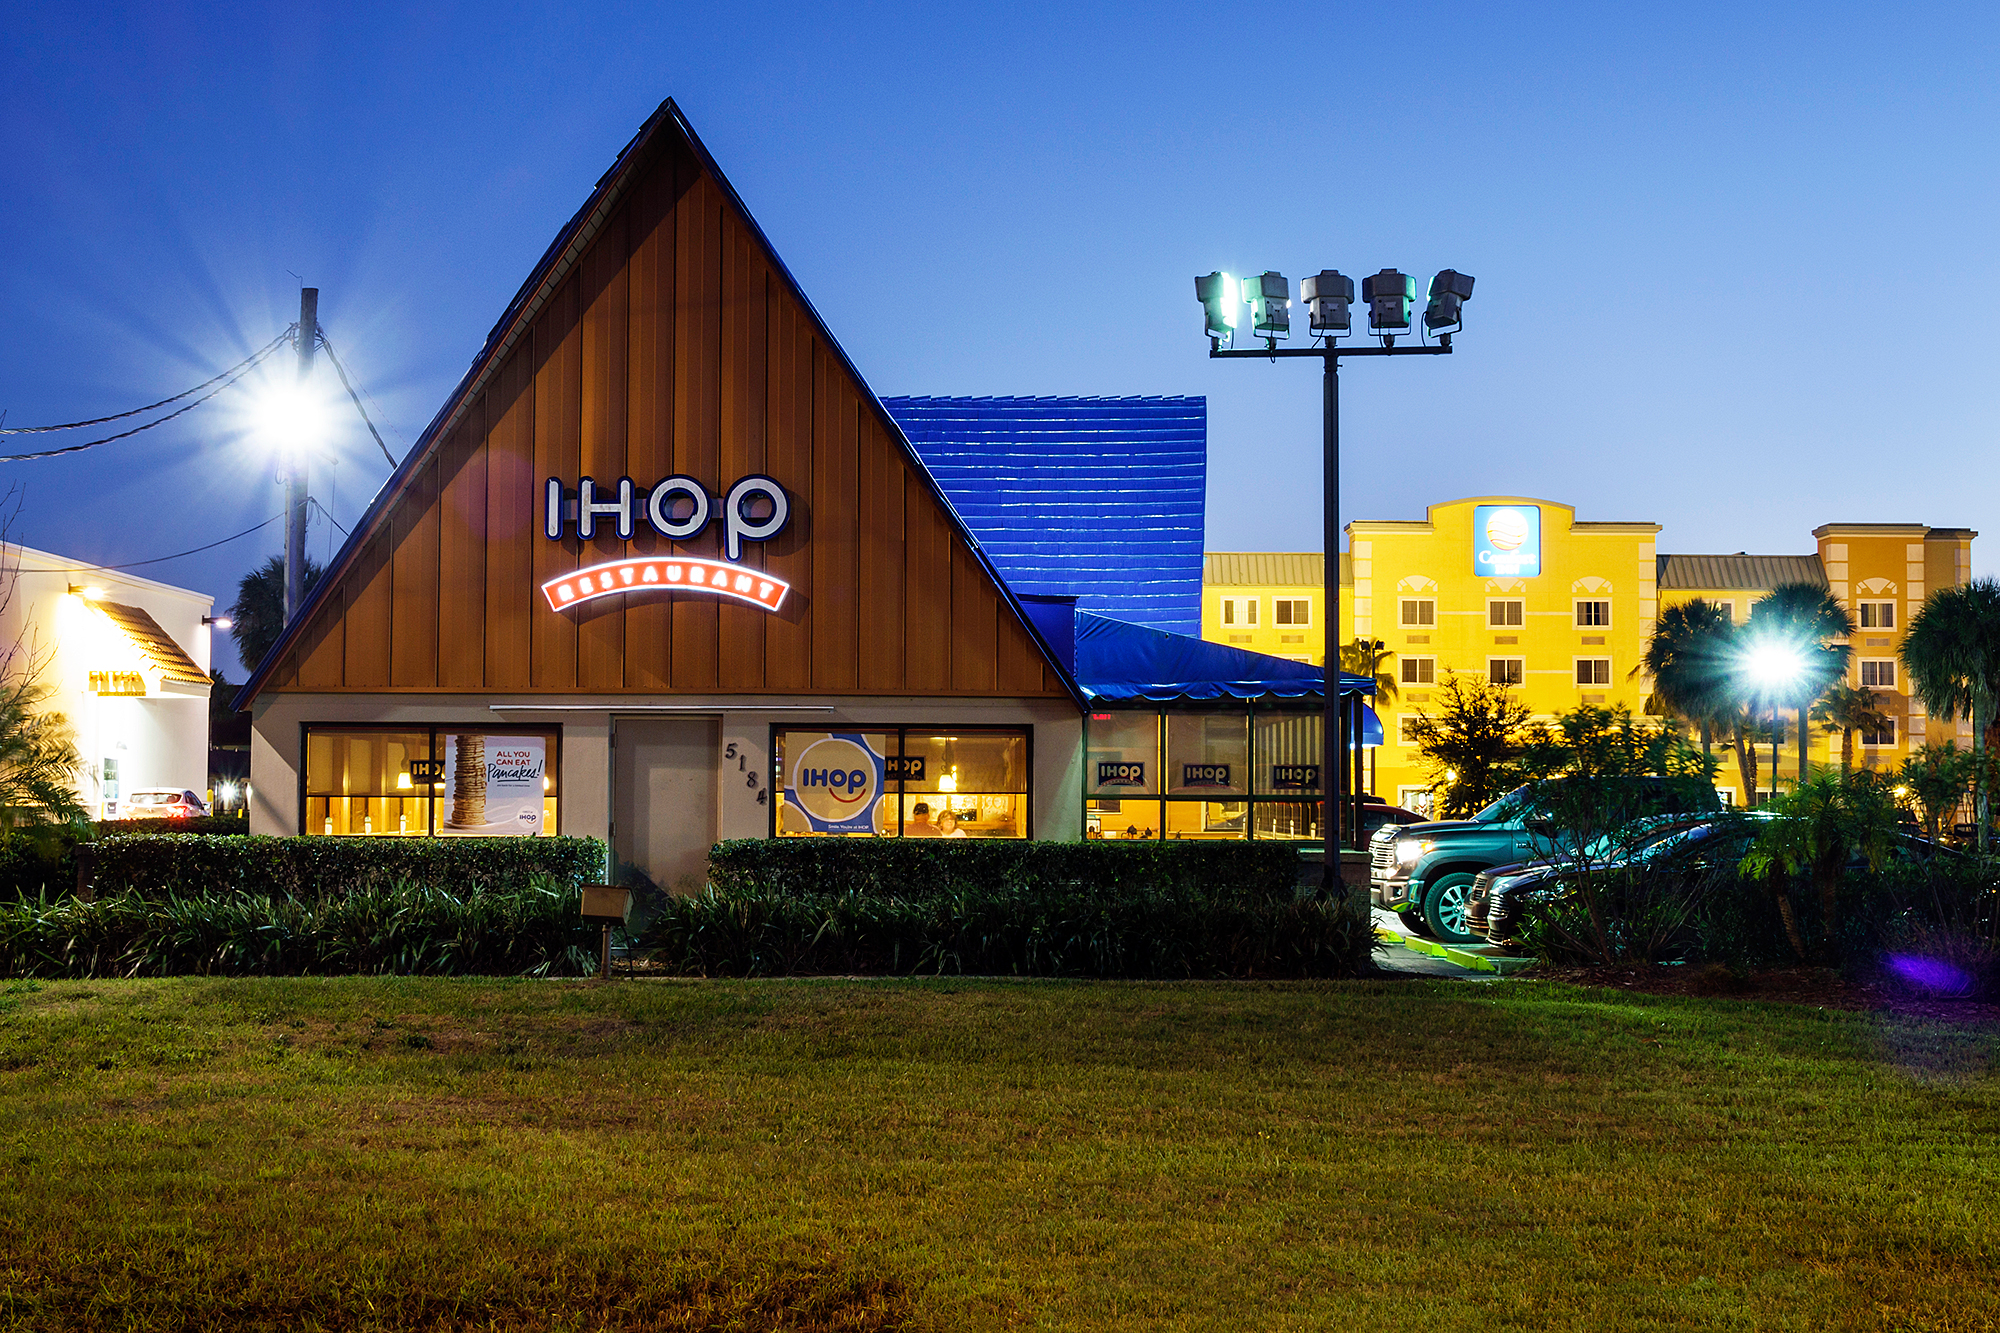 IHOP Changes Their Name To IHOb, The Internet Speculates